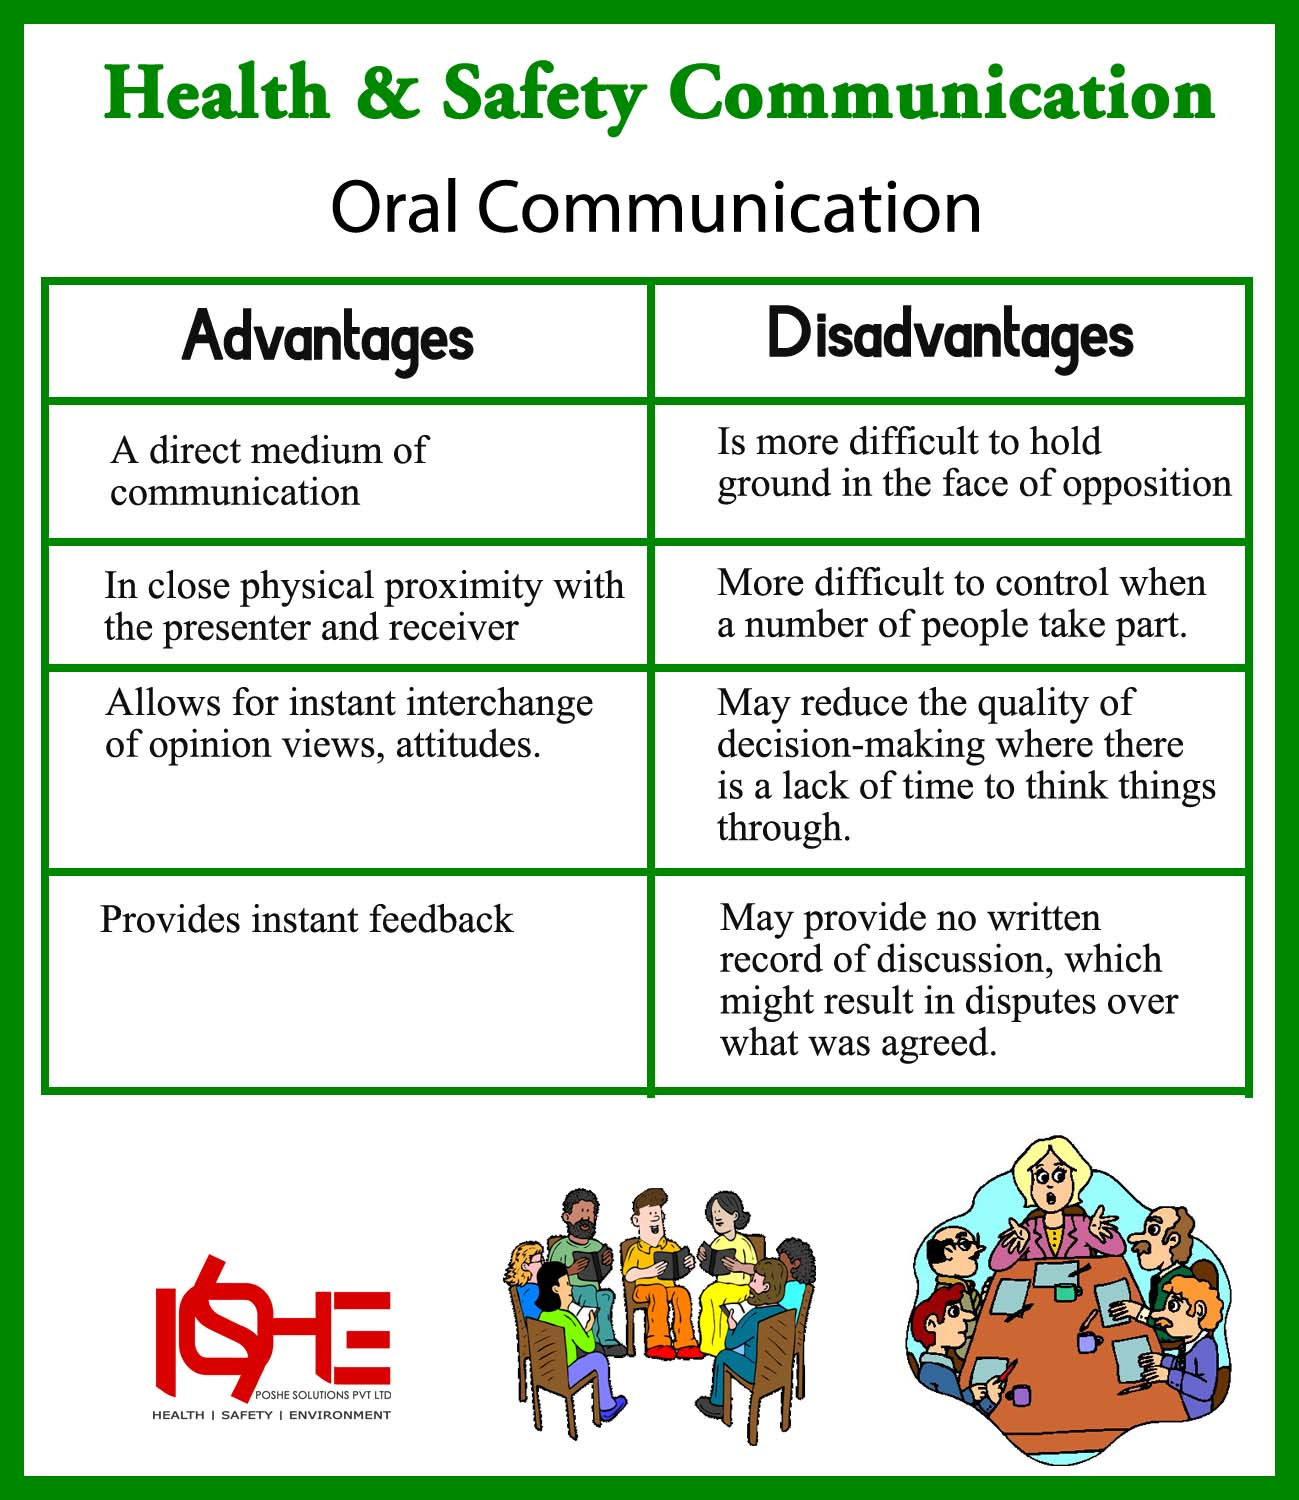 oral communications Preview only oral communication value rubric for more information, please contact value@aacuorg.